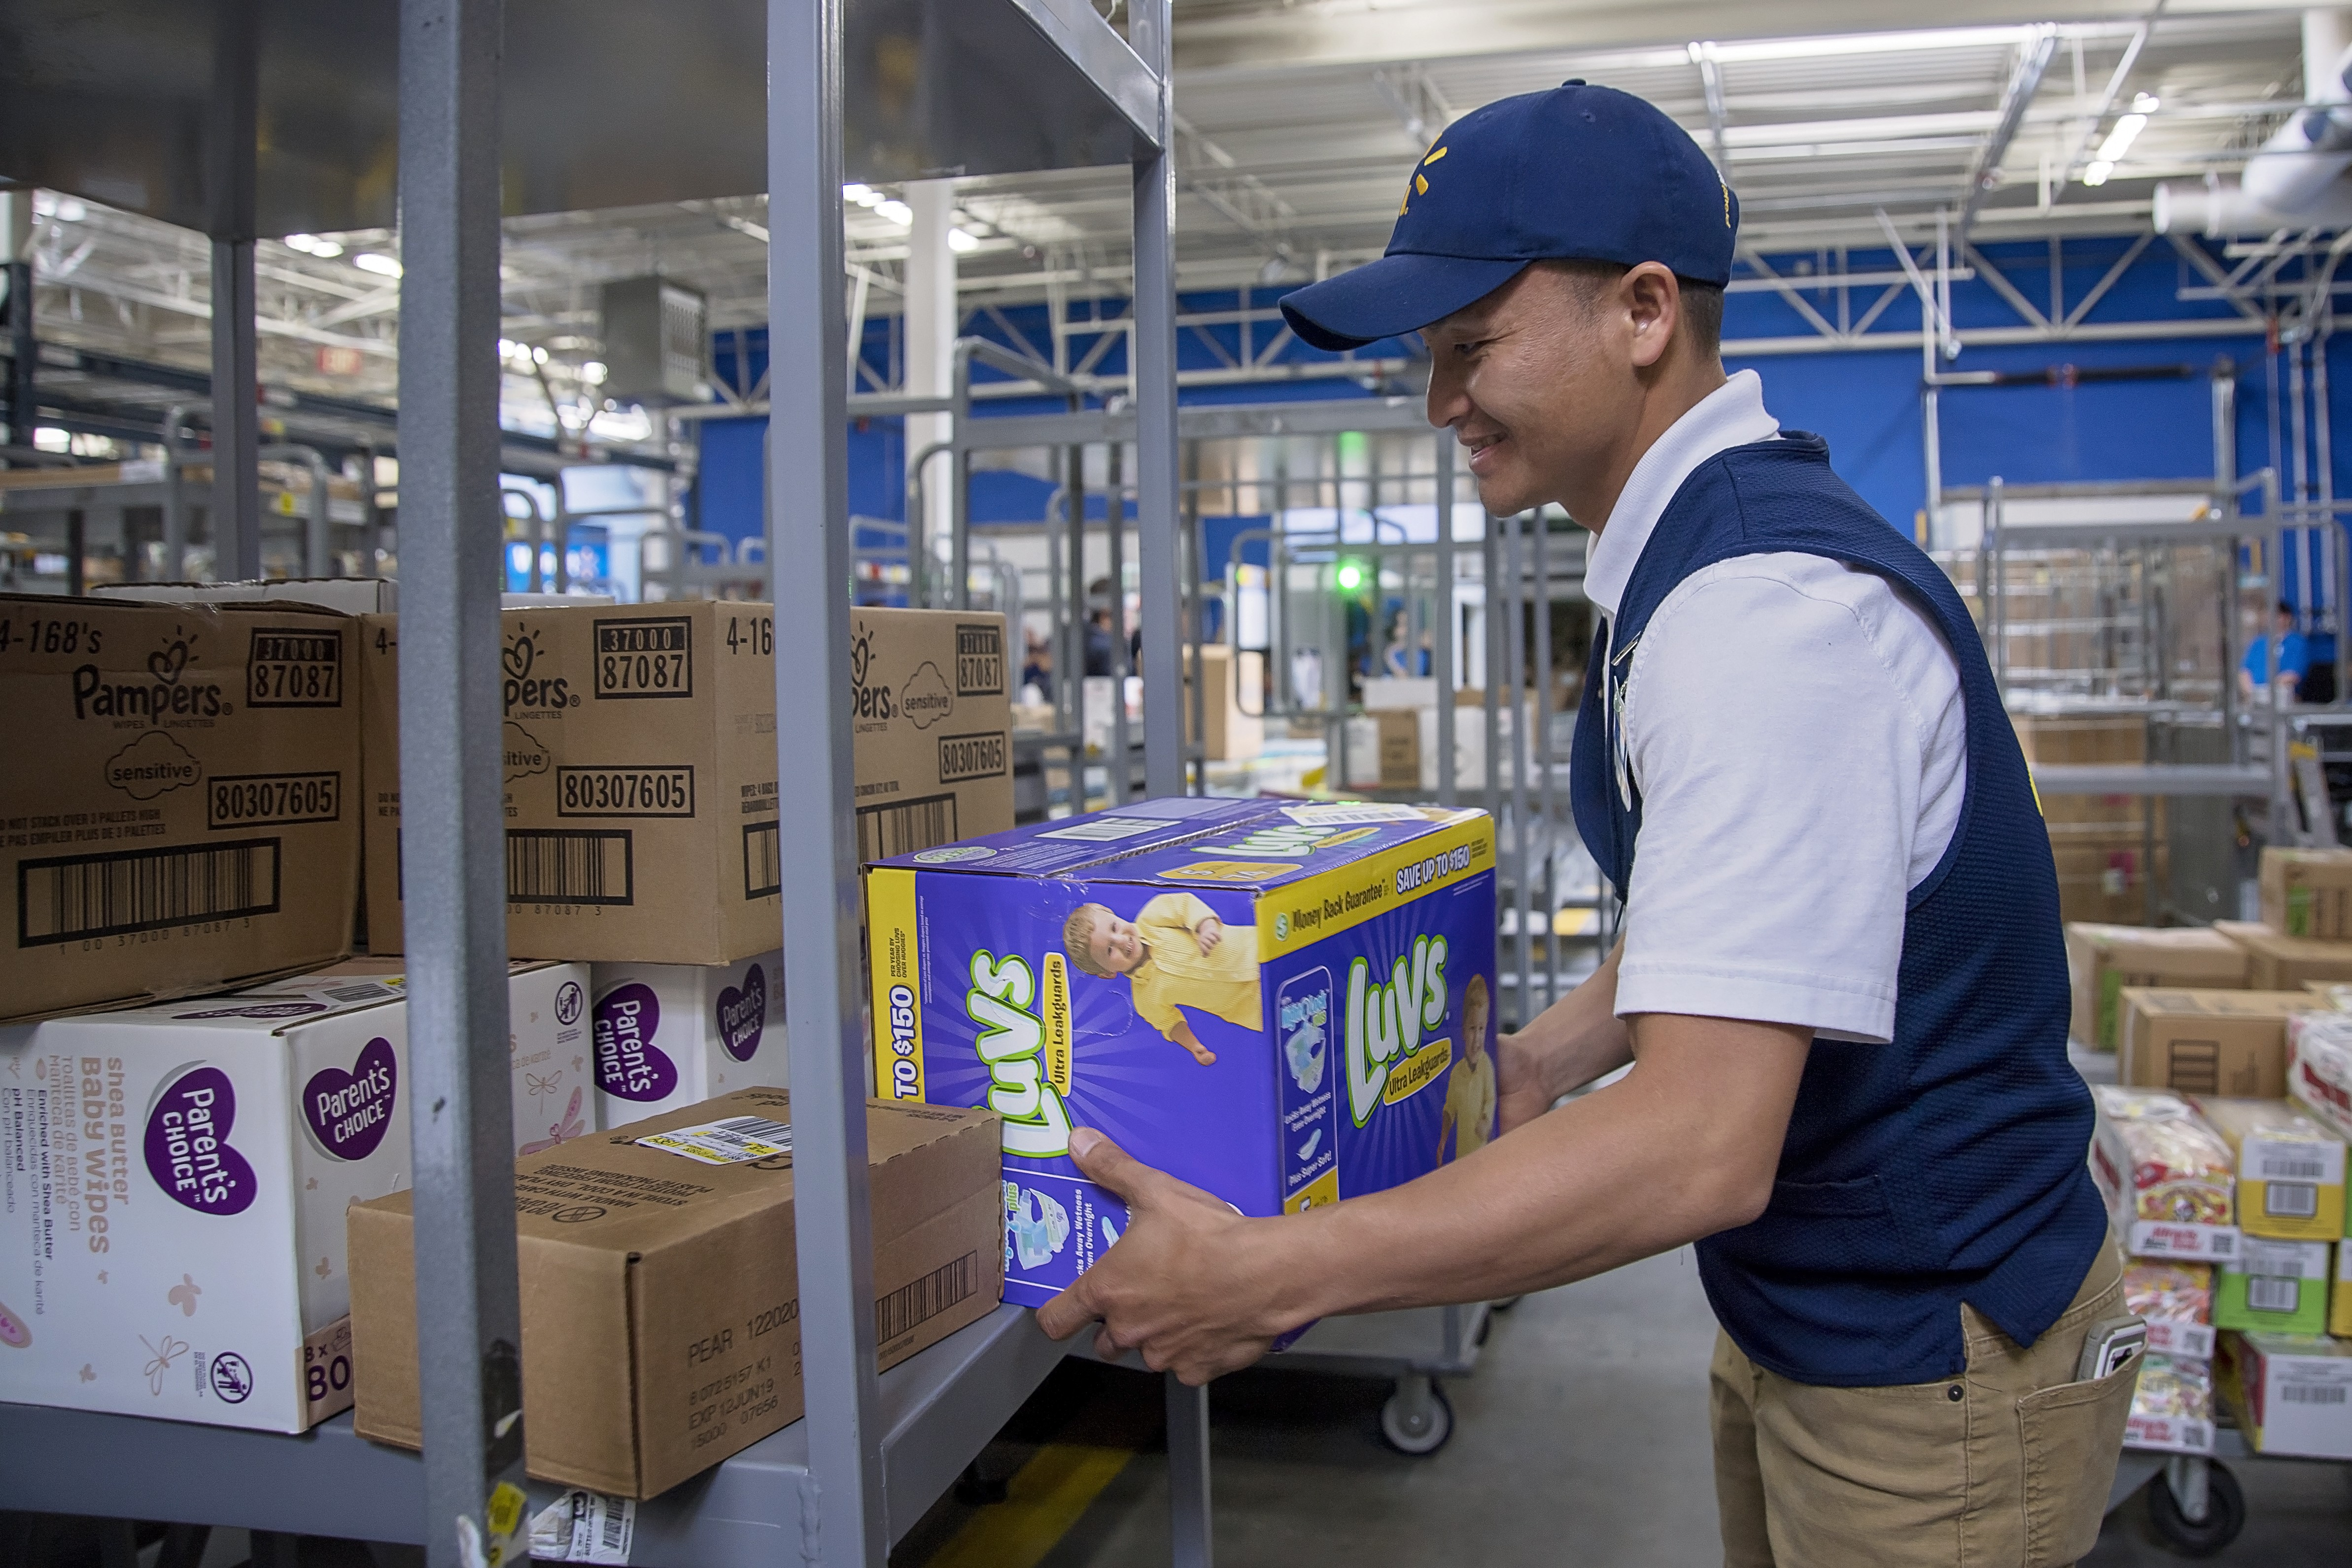 An associate unloads boxes using the new FAST unloading process